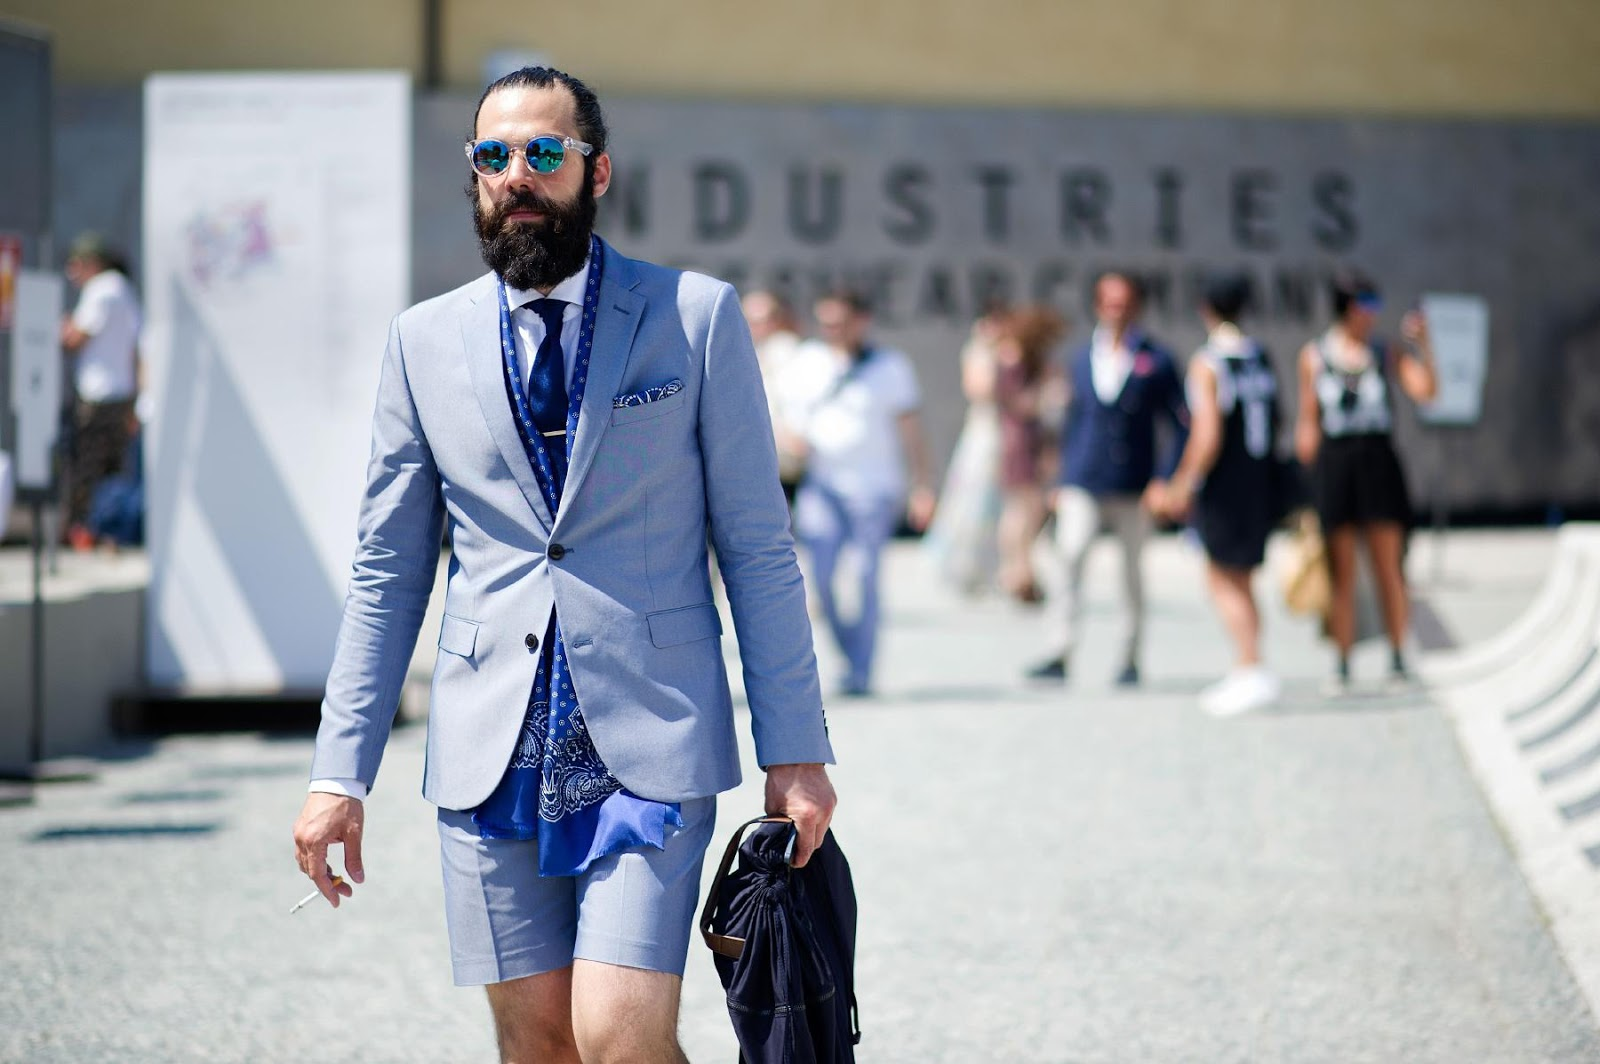 Mike Kagee Fashion Blog Street Style Swagger At The Pitti Uomo Show In Florence Italy June 2013